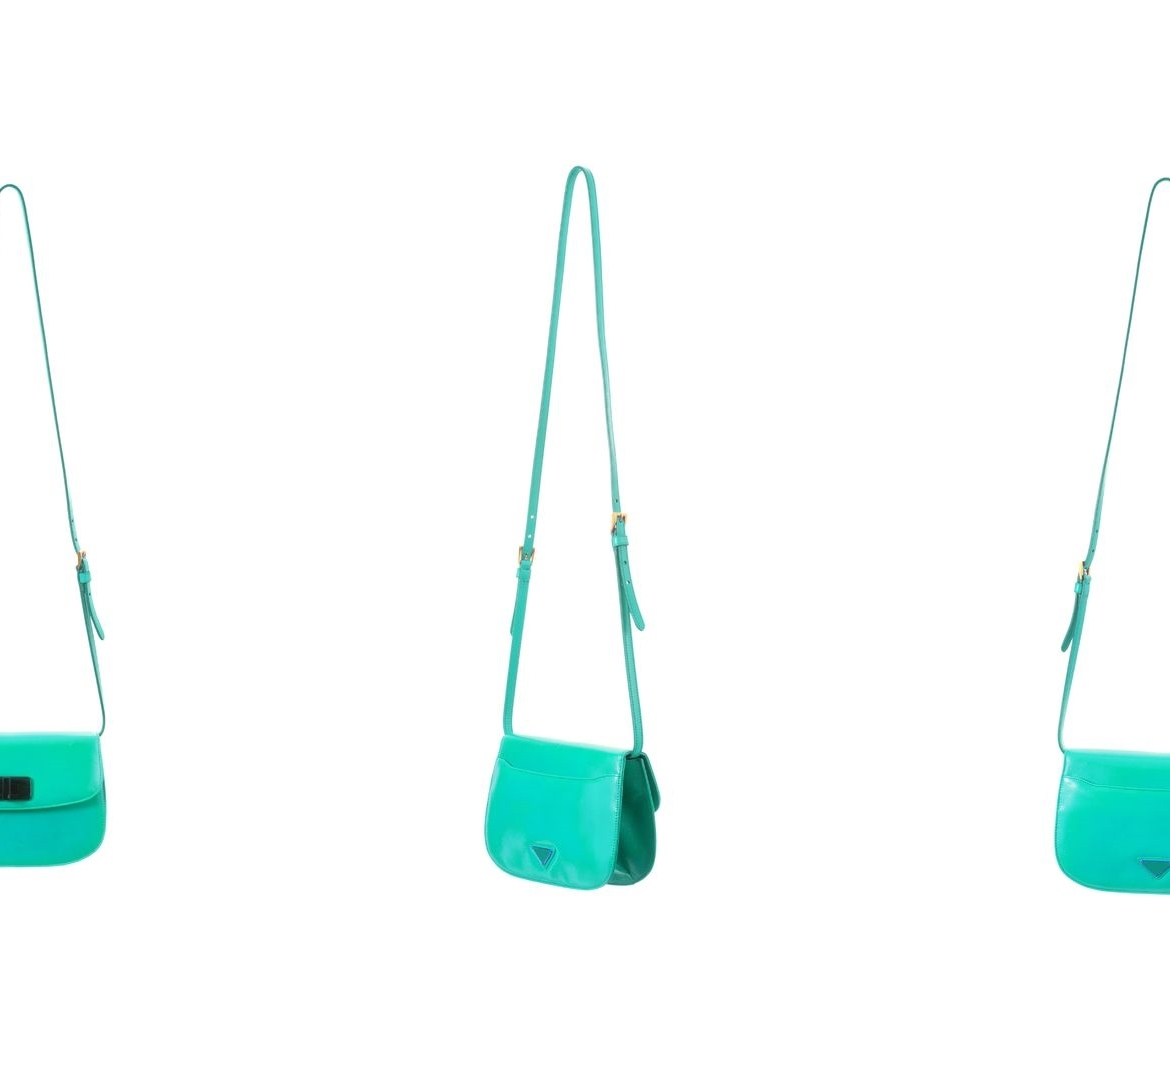 3 images of a teal colored crossbody bag